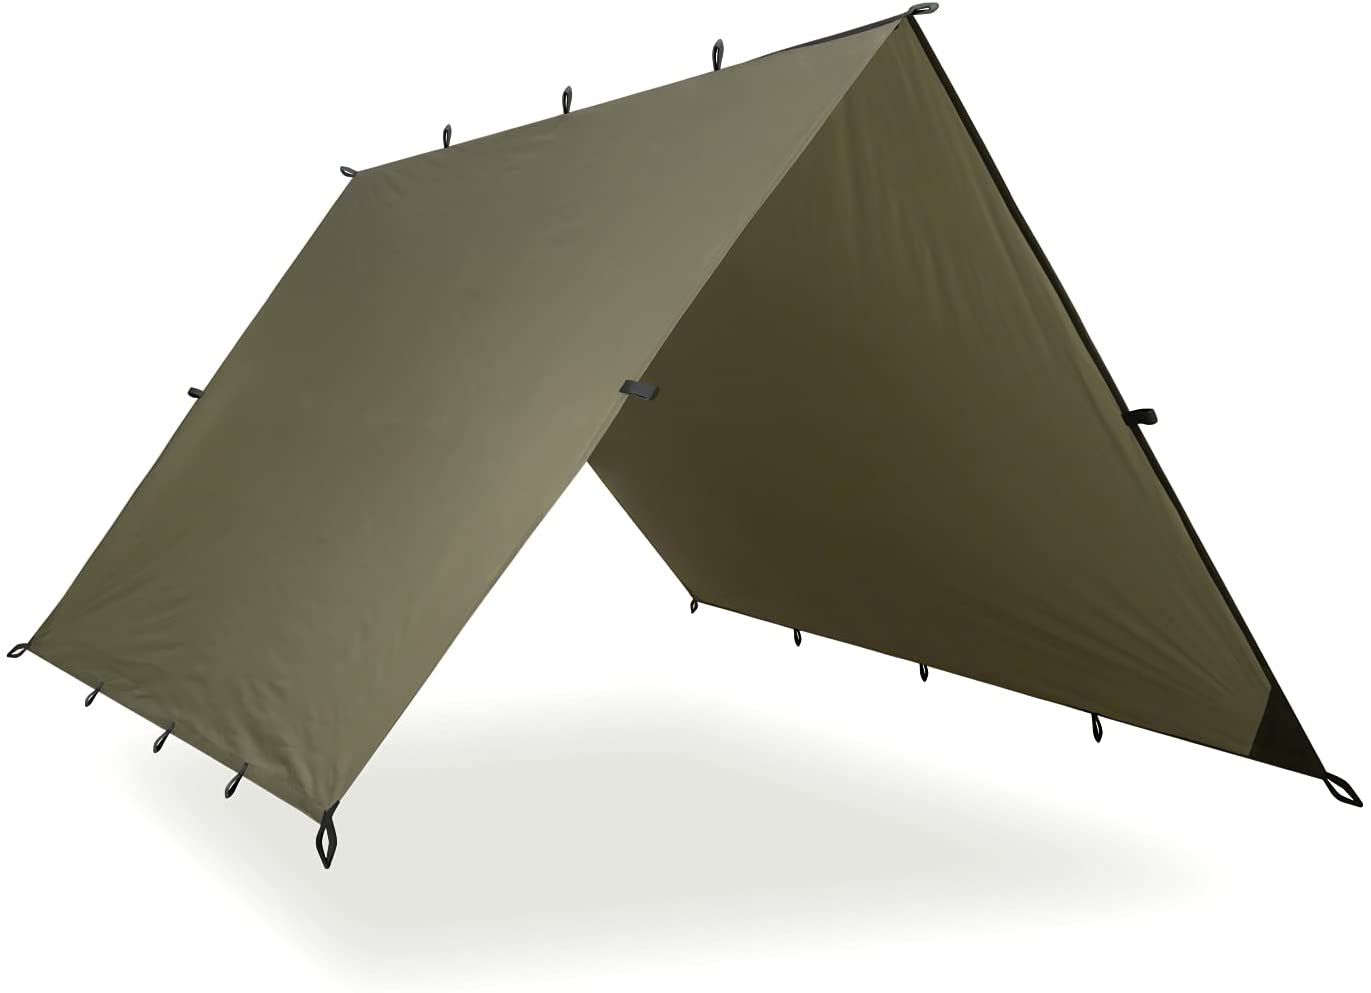 Aqua Quest Guide Tarp - SilNy Manufacturer direct delivery Ripstop Waterproof NEW before selling 100% Ultralight